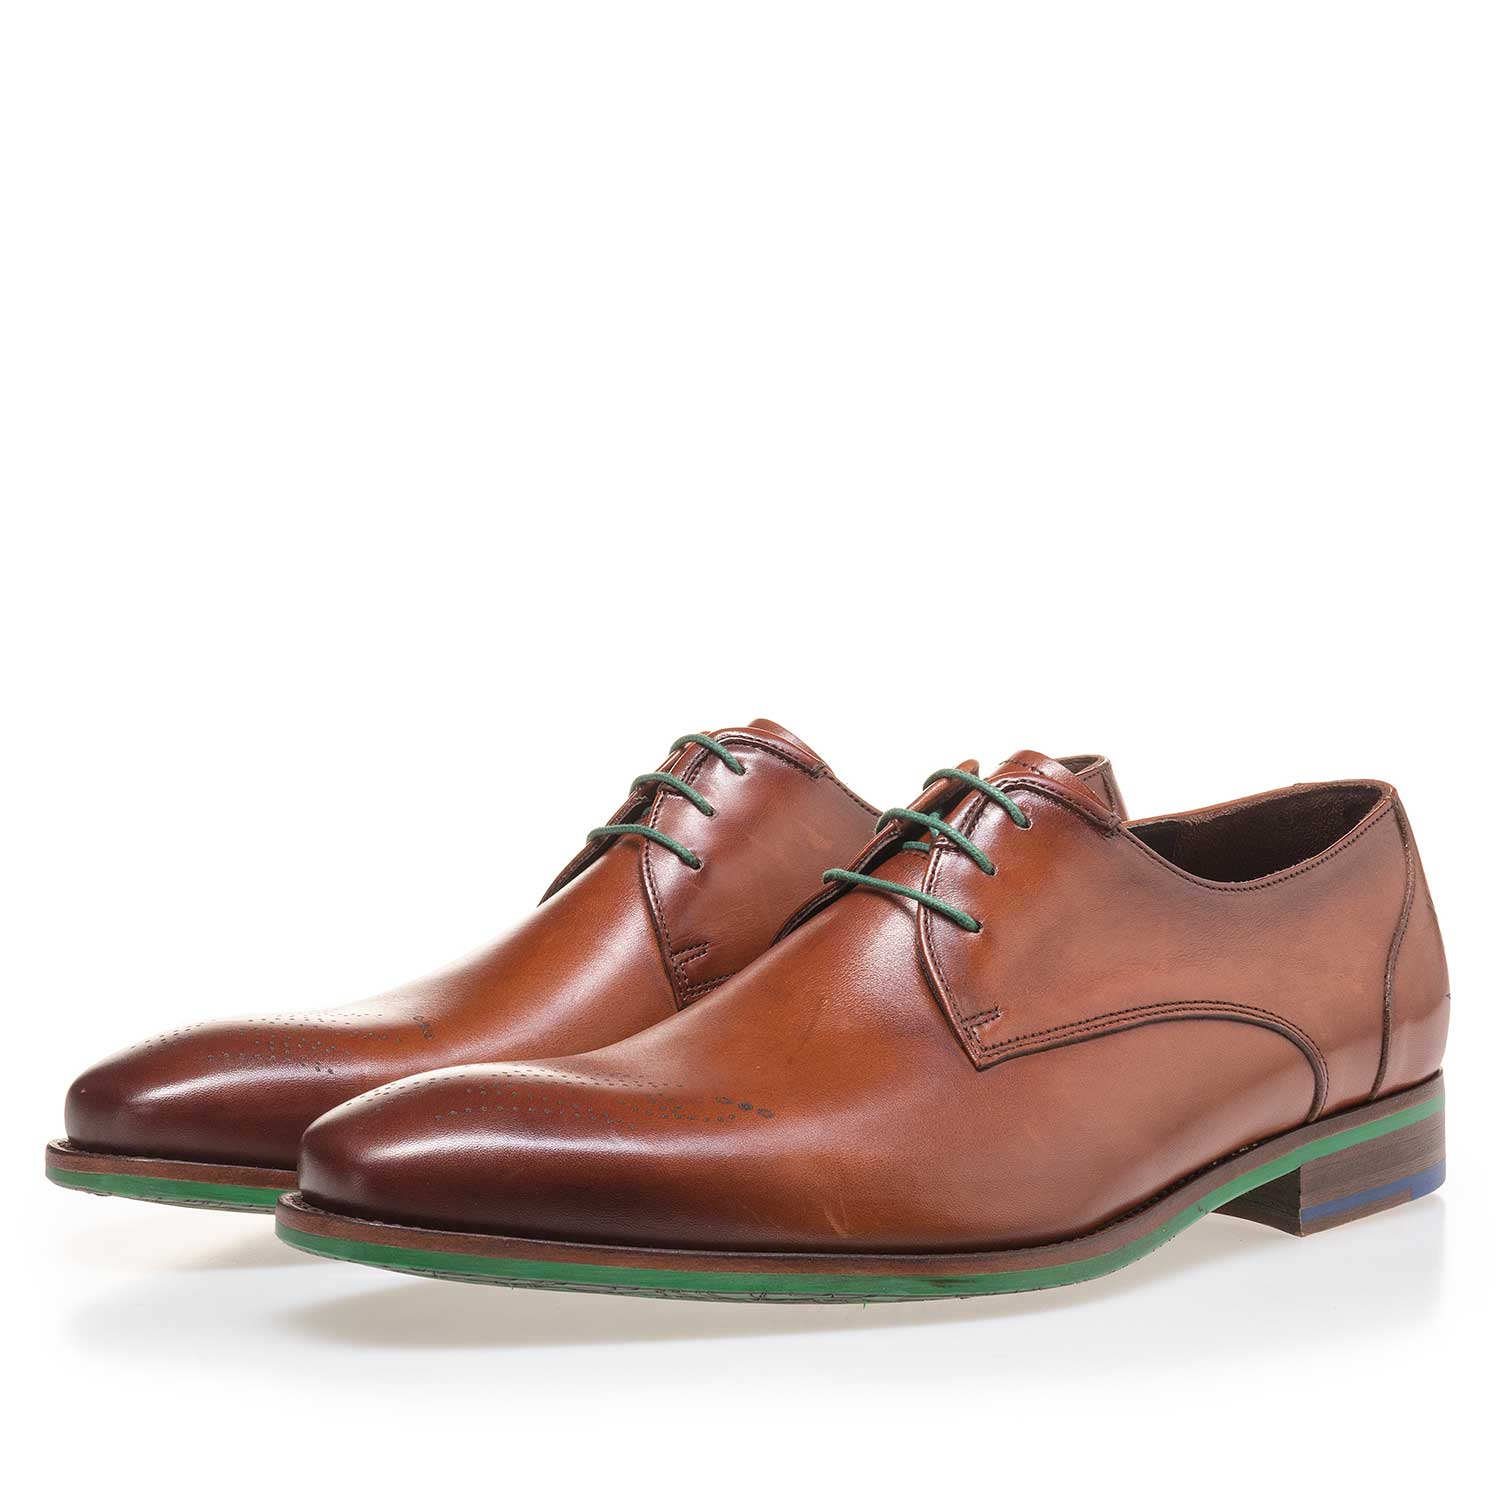 14193/02 - Dark cognac-coloured leather lace shoe